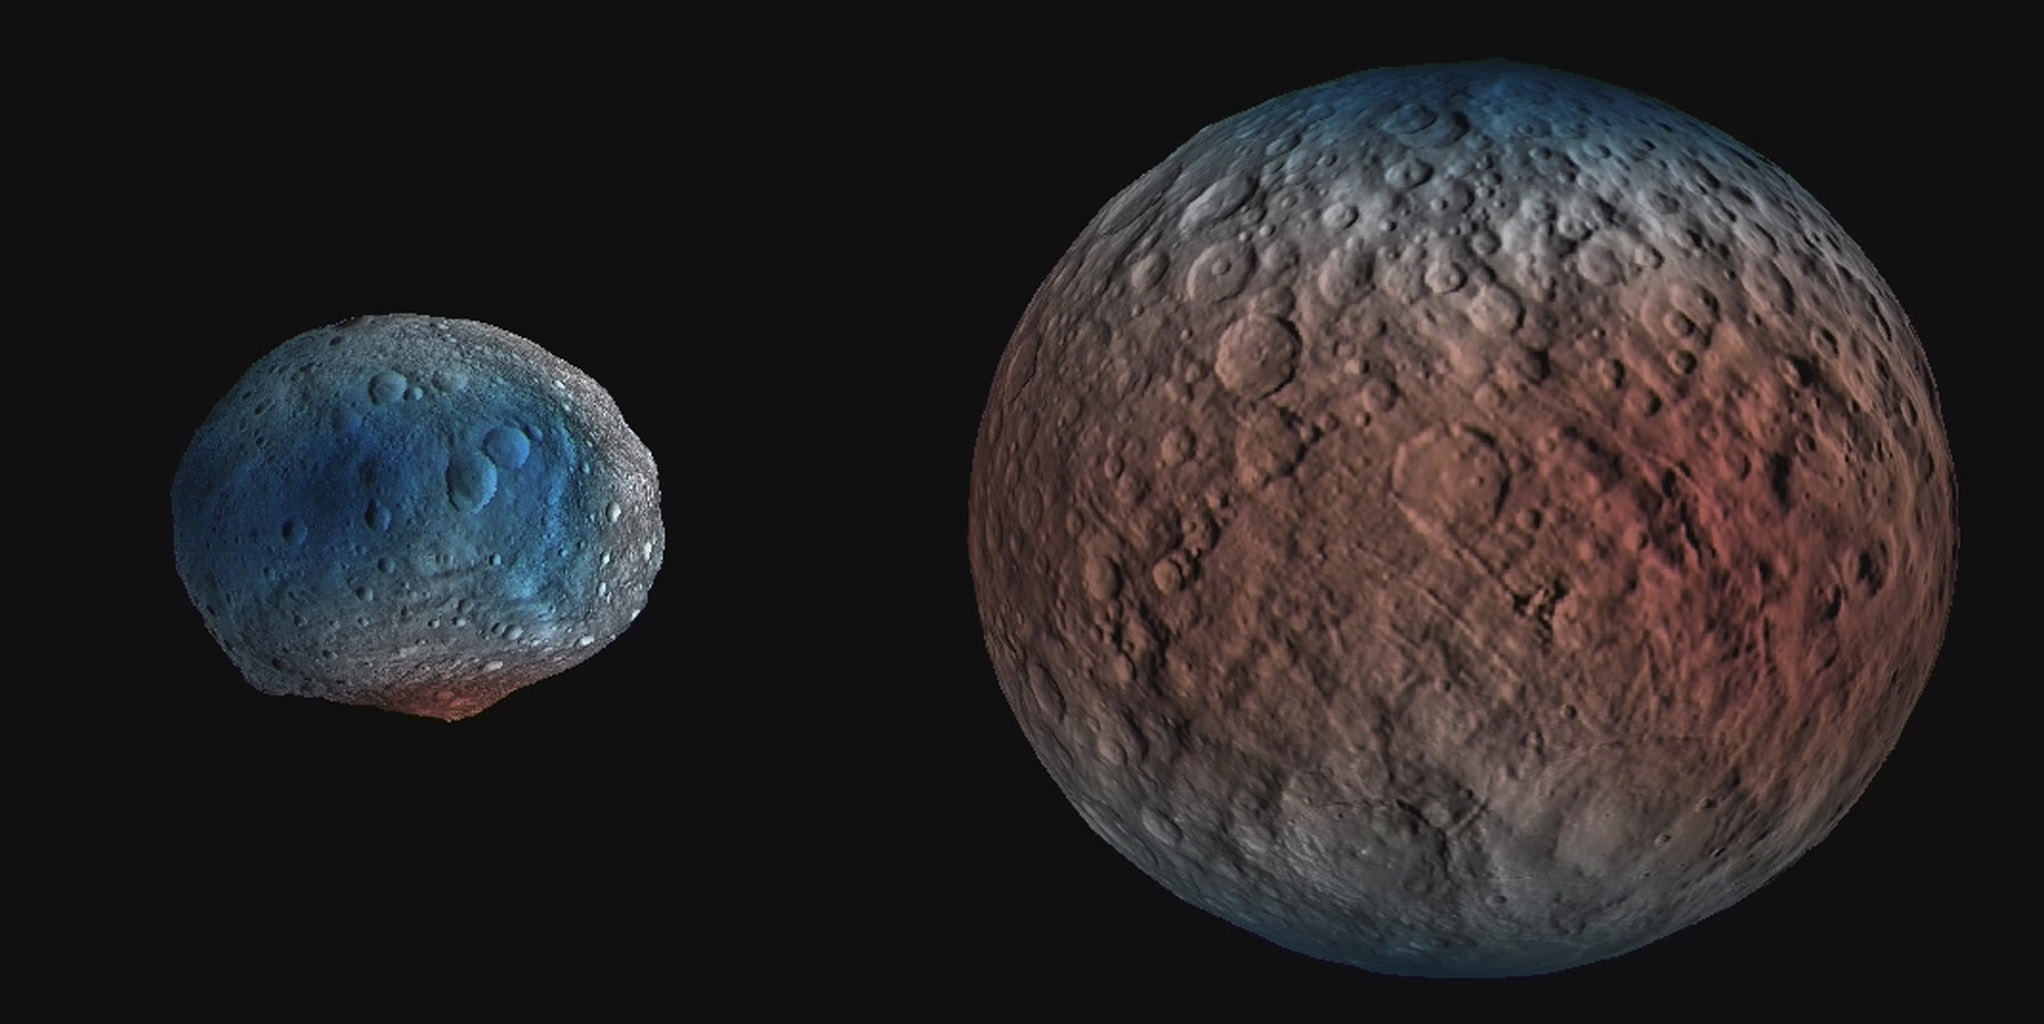 NASA's Dawn spacecraft determined the hydrogen content of the upper yard, or meter, of Ceres' surface. Blue indicates where hydrogen content is higher, near the poles, while red indicates lower content at lower latitudes. Image credit: NASA/JPL-Caltech/UCLA/MPS/DLR/IDA/PSI